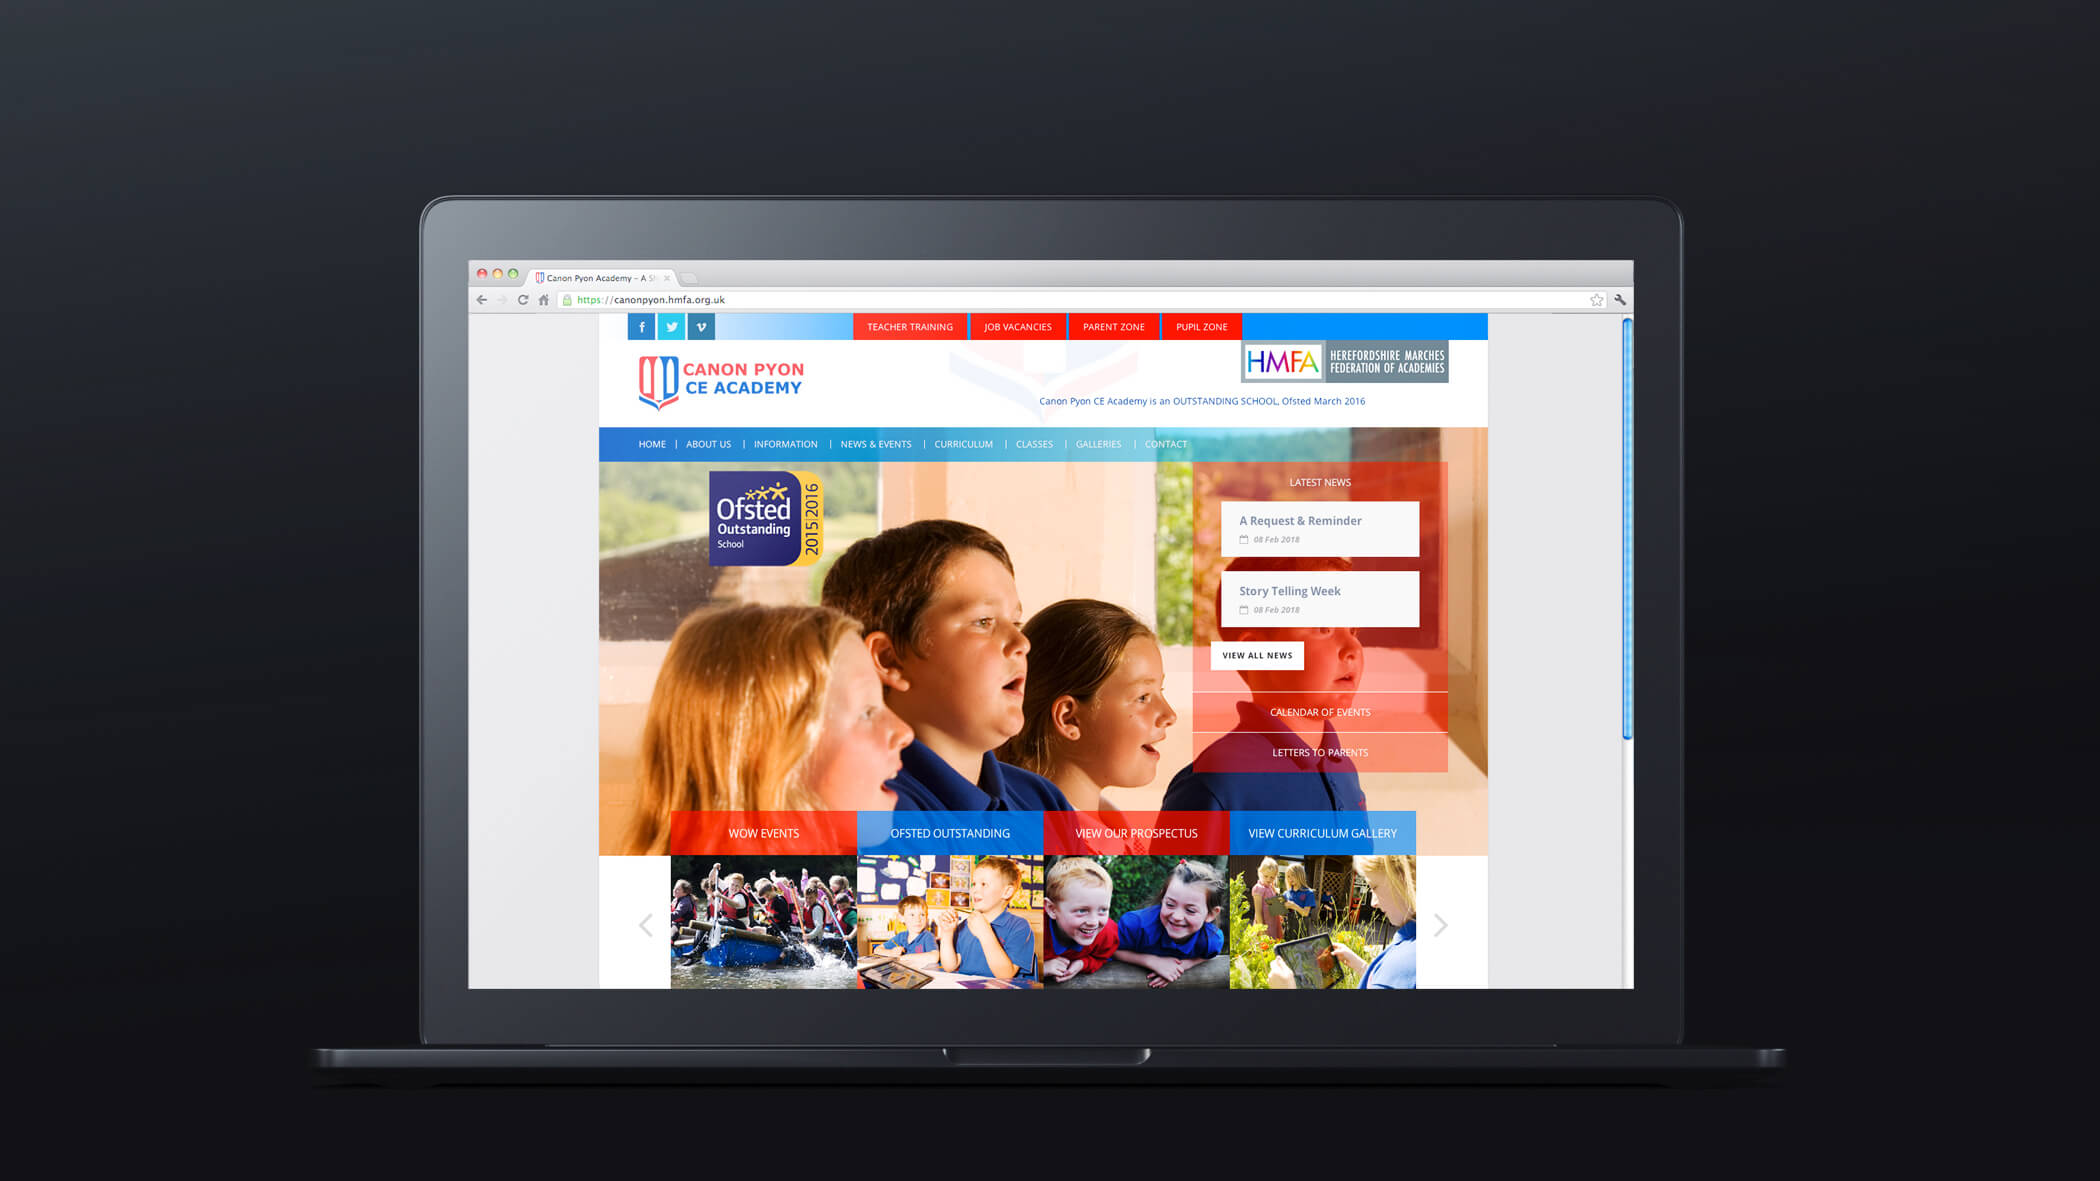 church of england school website design mockup with hyperlink to site